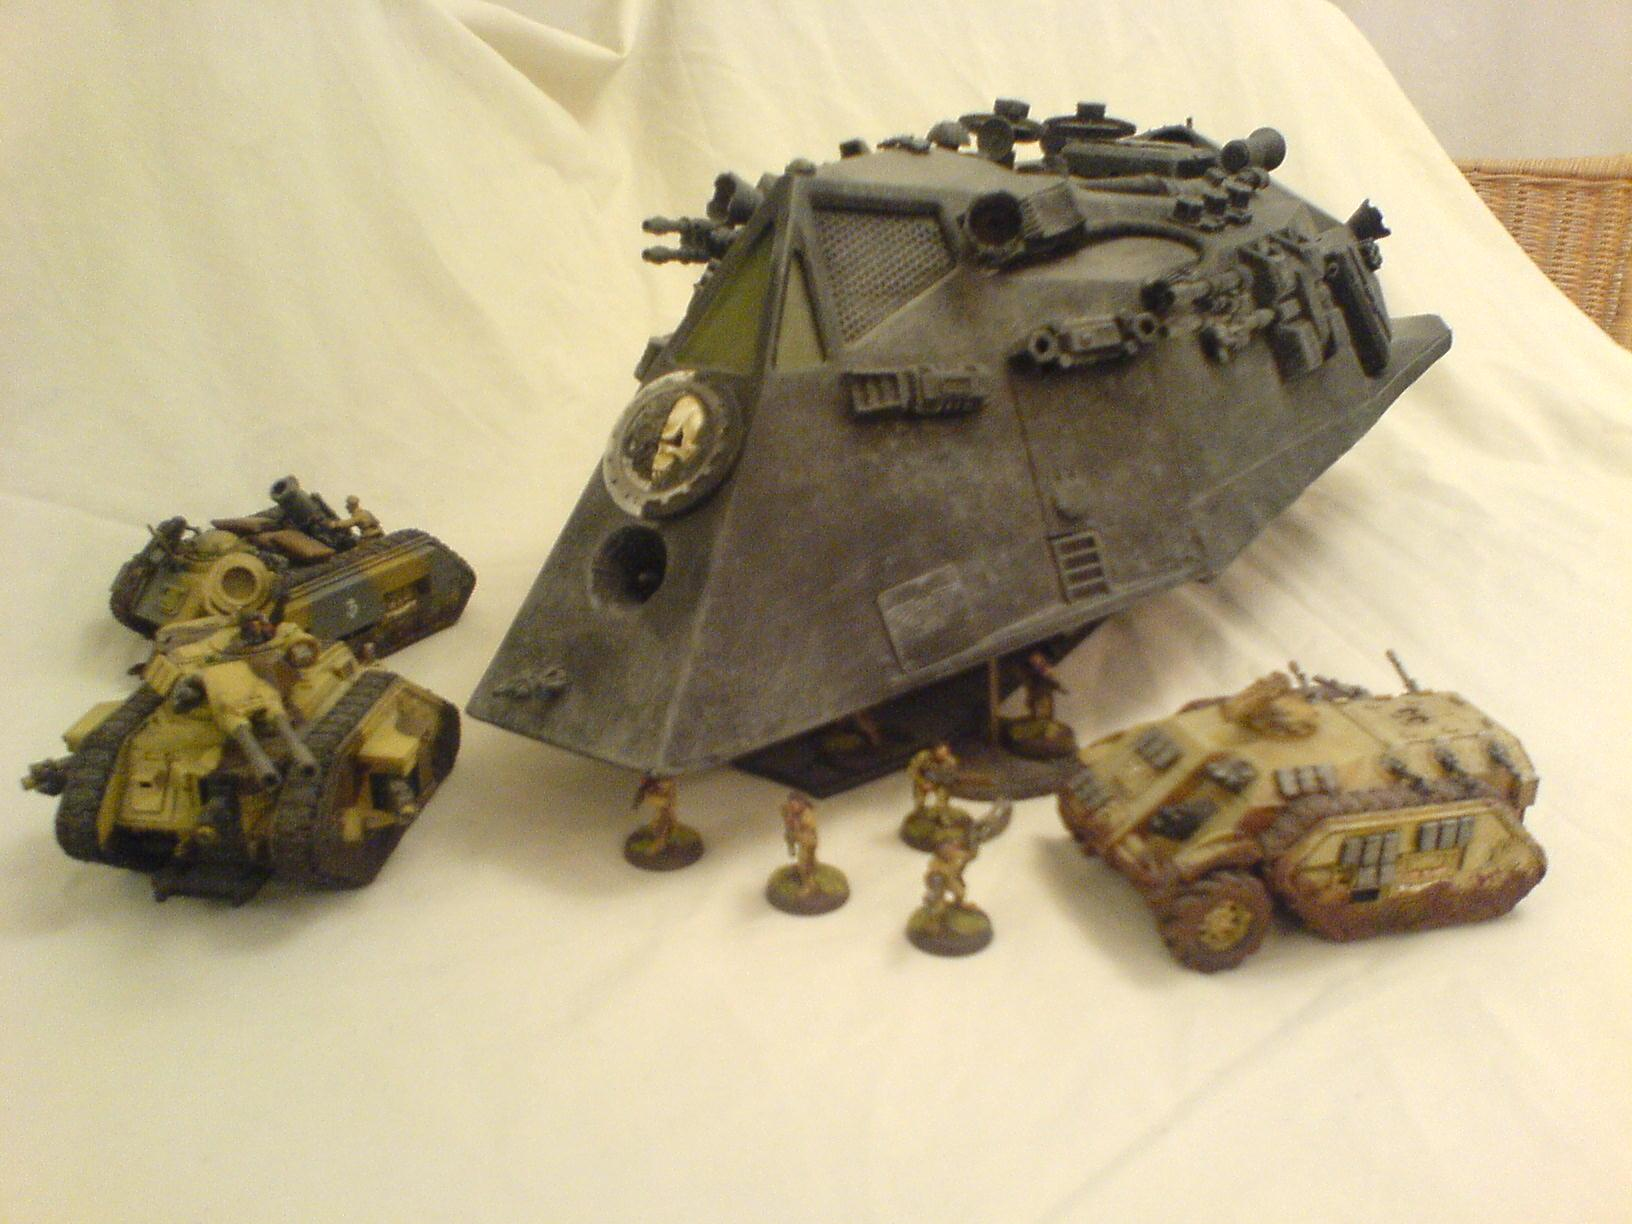 Chimera, Conversion, Drop Ship, F-117, Imperial Guard, Leman Russ, Toy, Warhammer 40,000